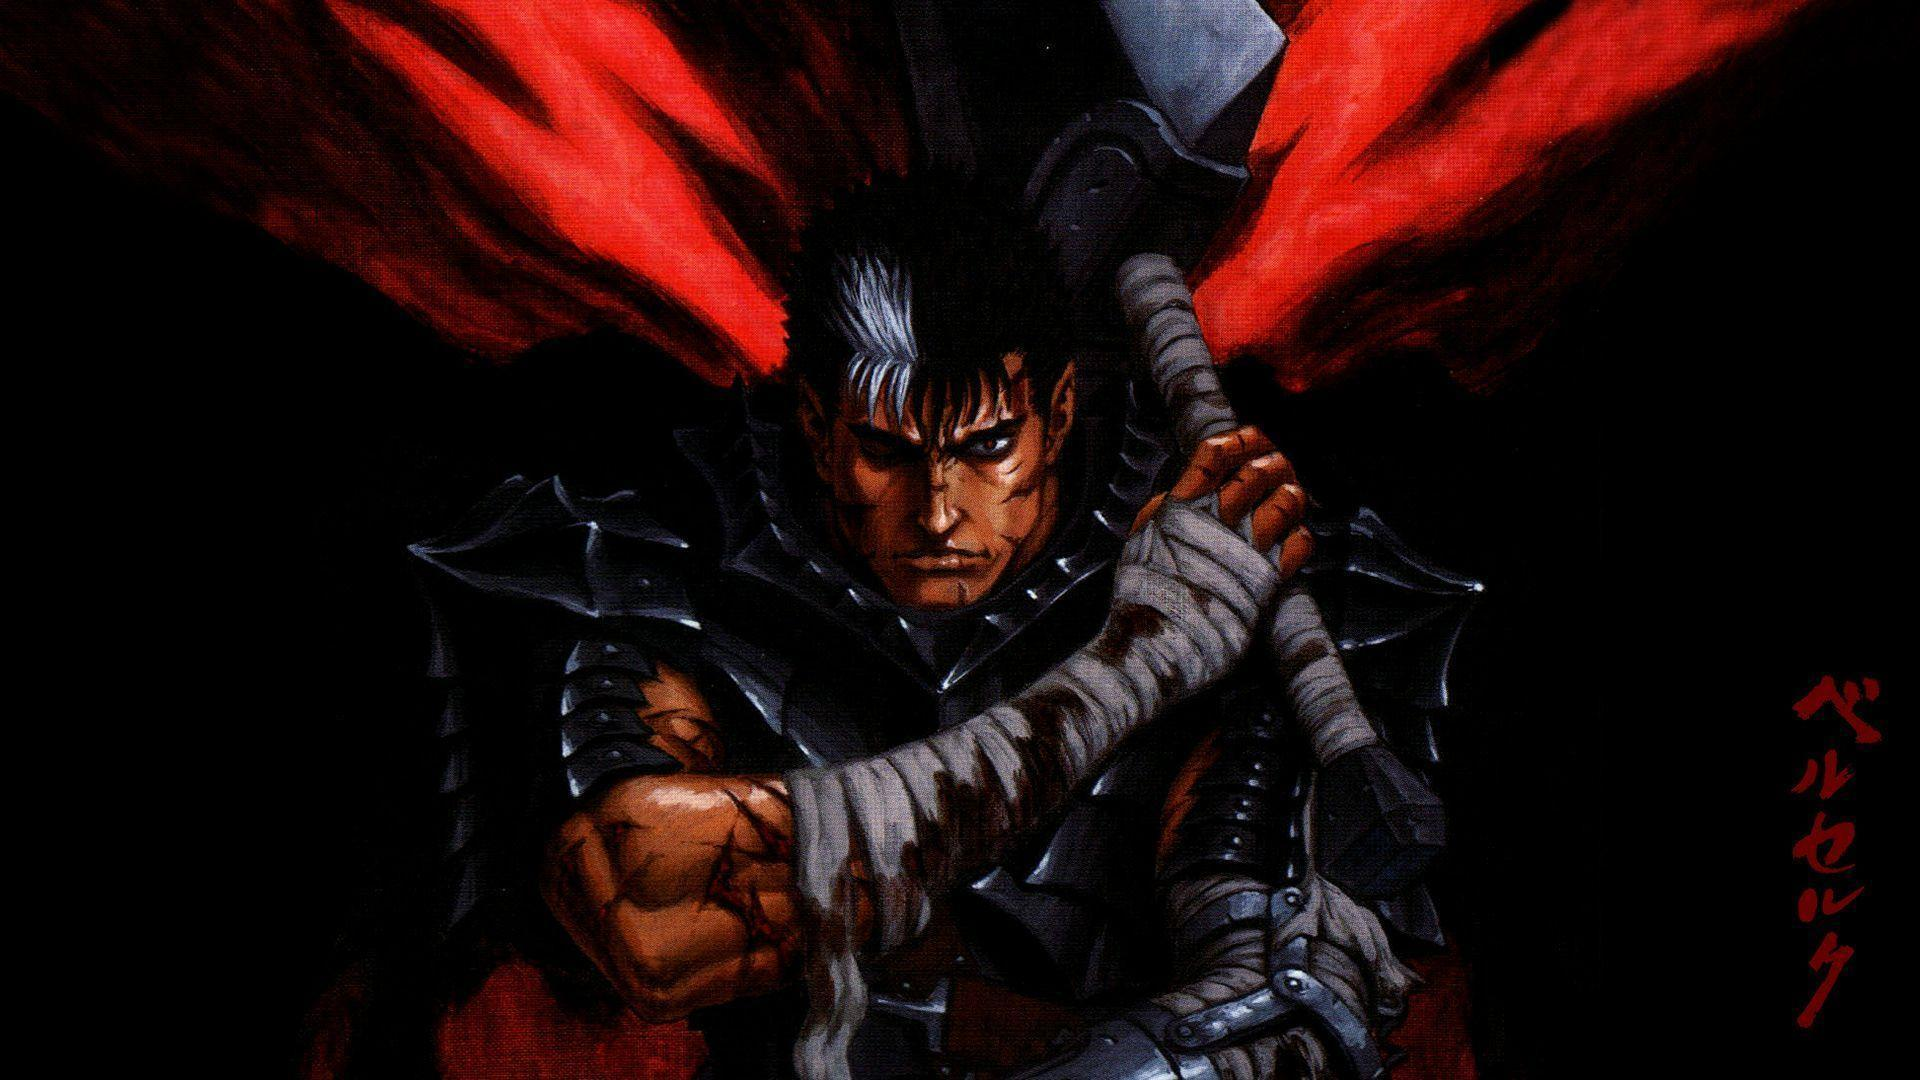 berserk wallpaper 4k - photo #3